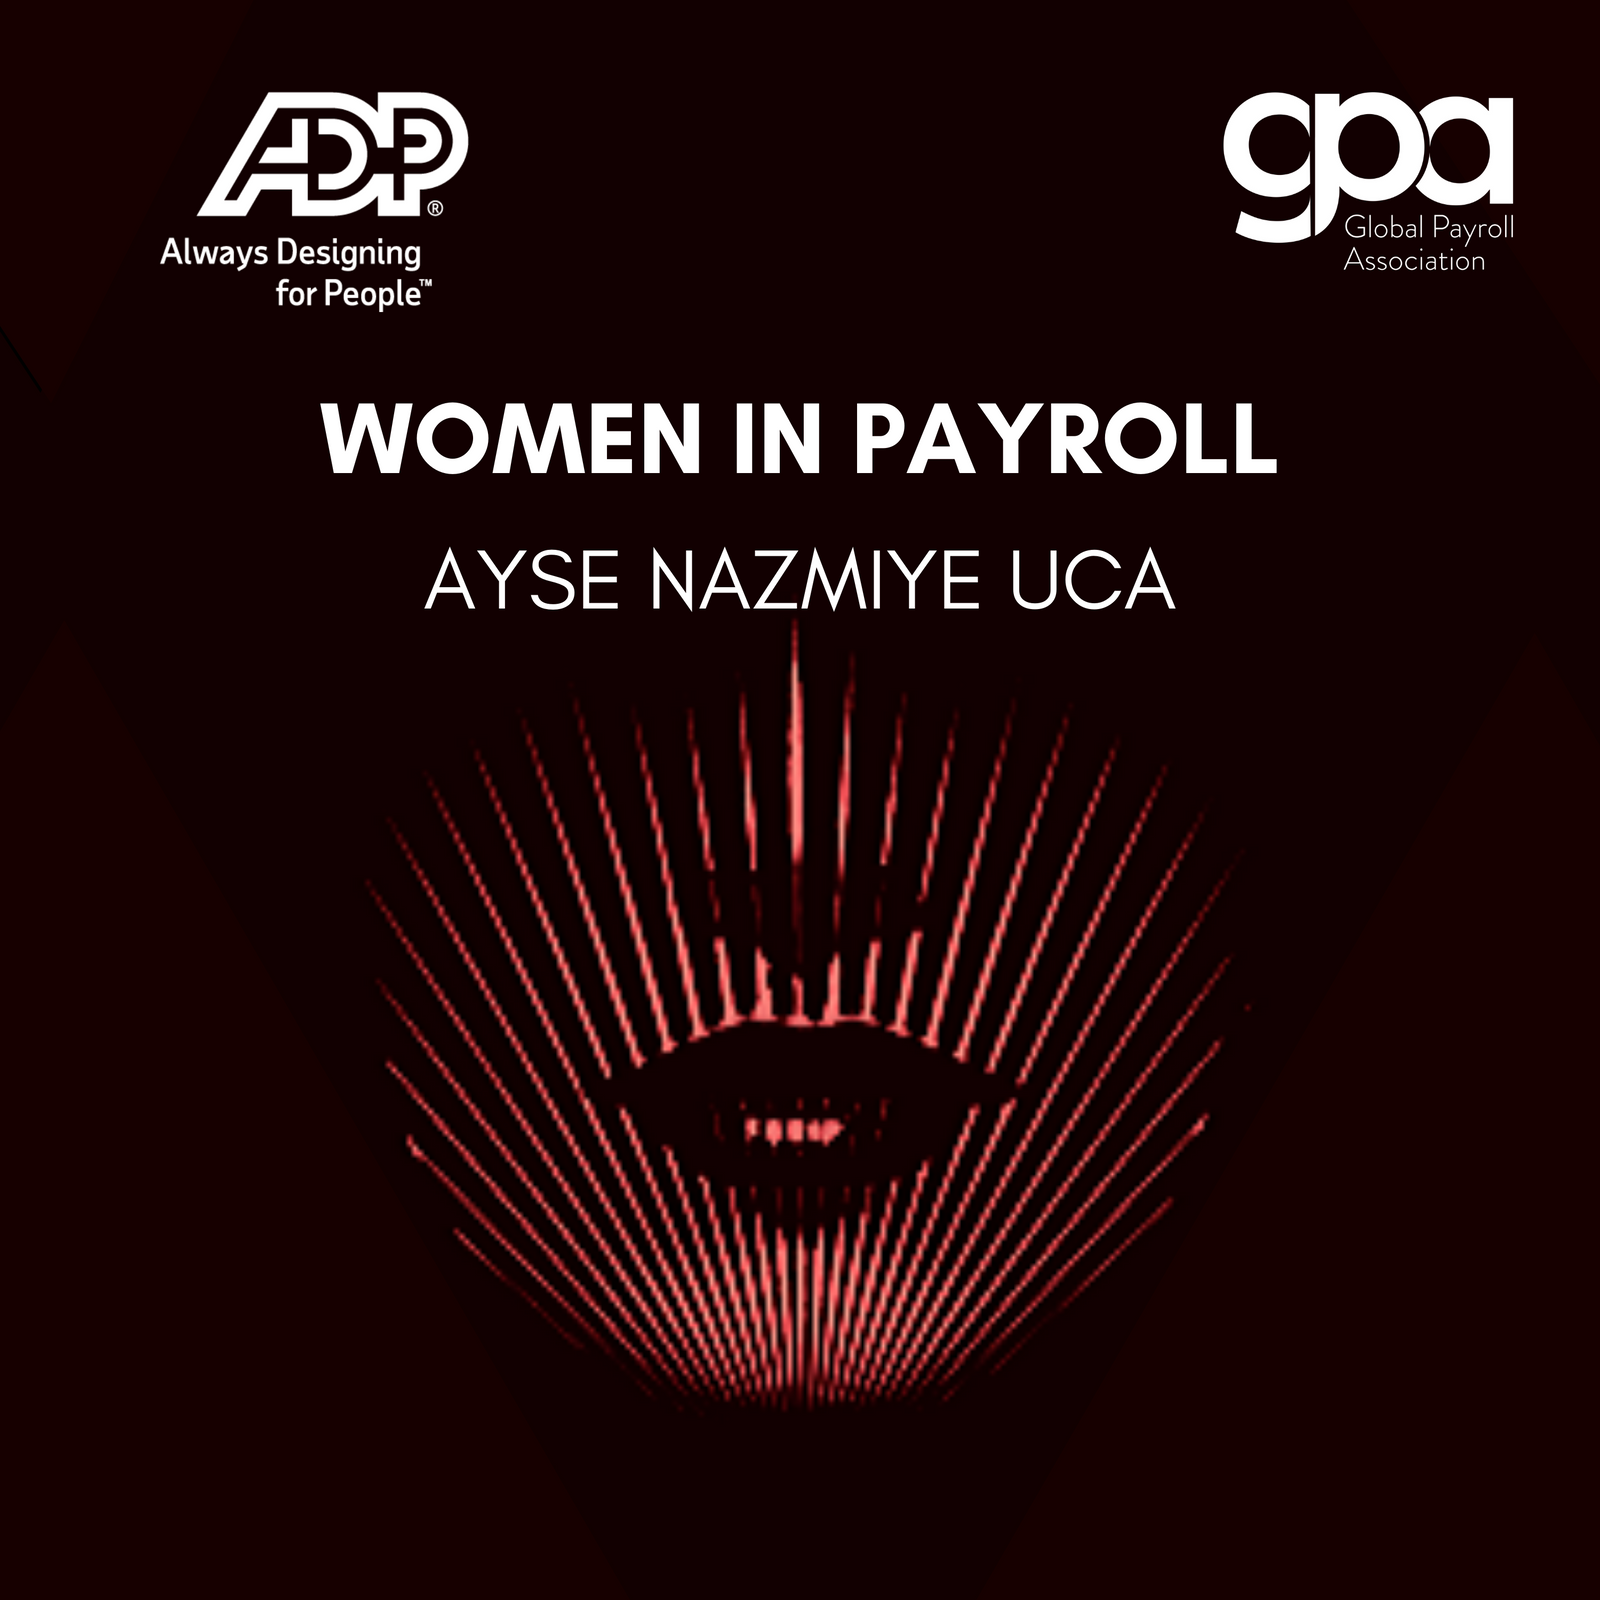 Women in Payroll: Ayse Nazmiye Uca